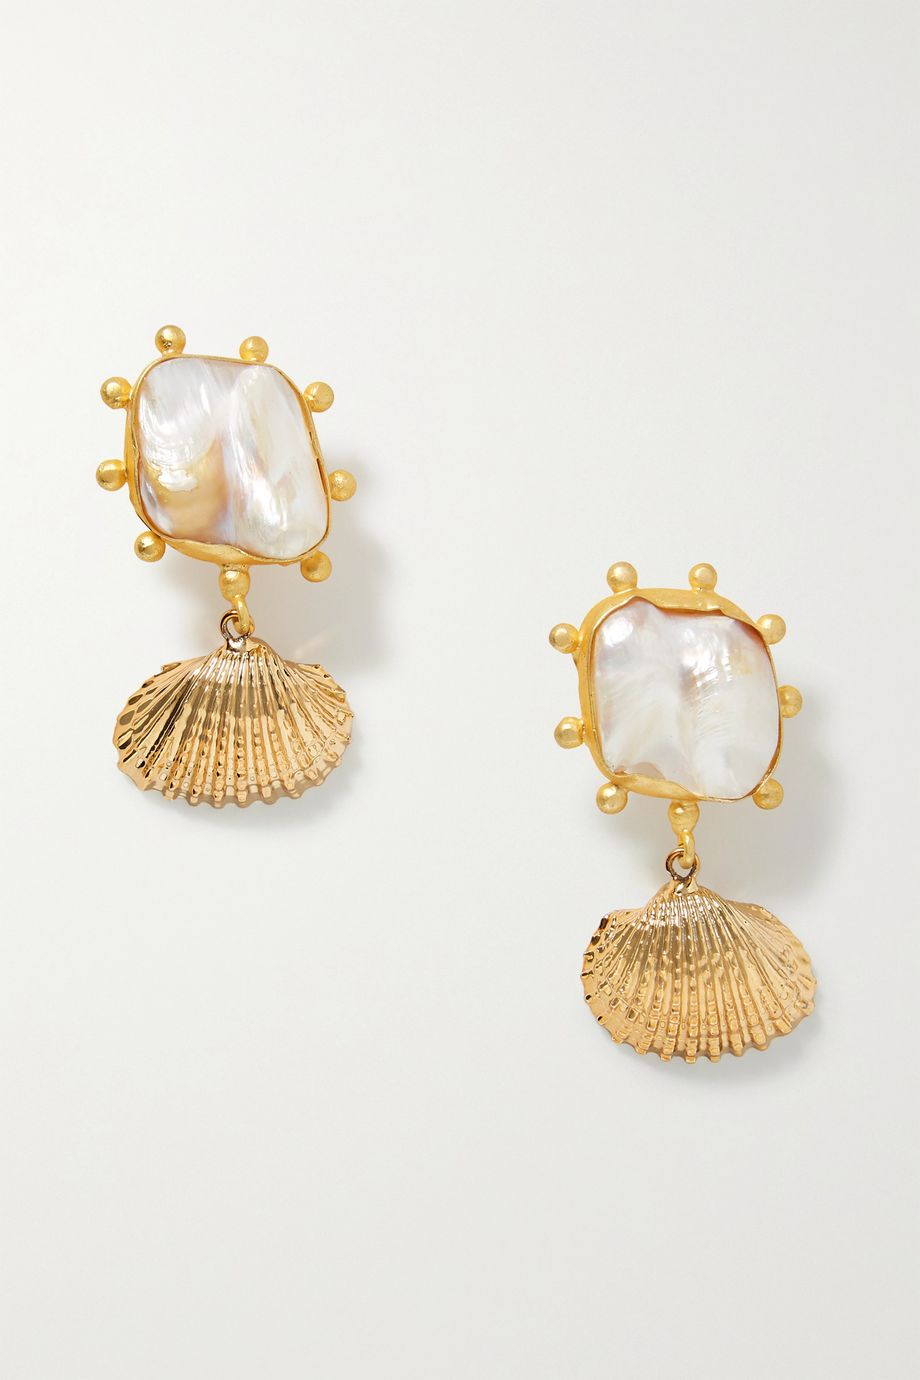 Peet Dullaert Ikata gold-plated pearl earrings